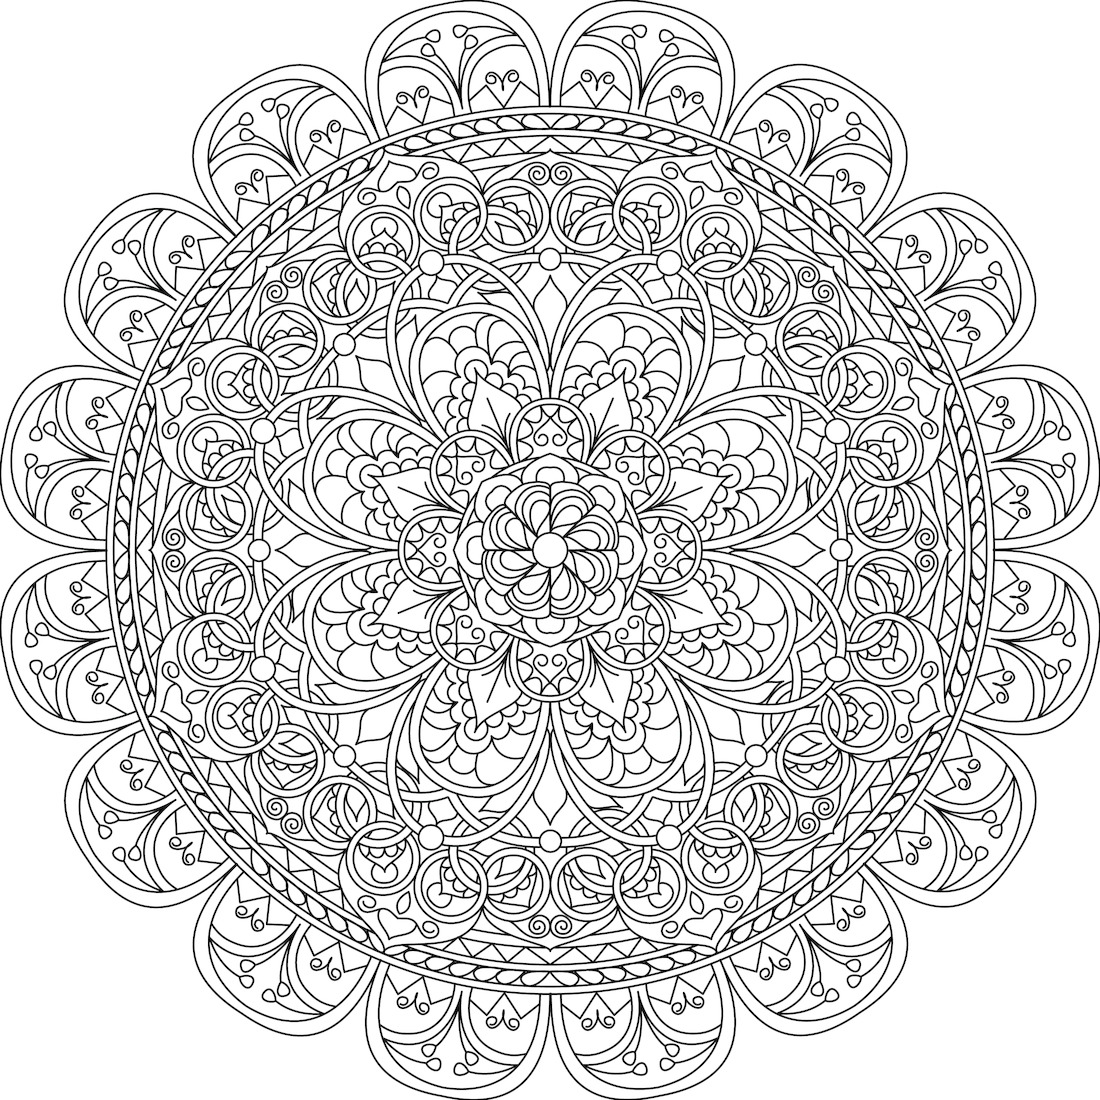 Mindful Compassion Coloring Page